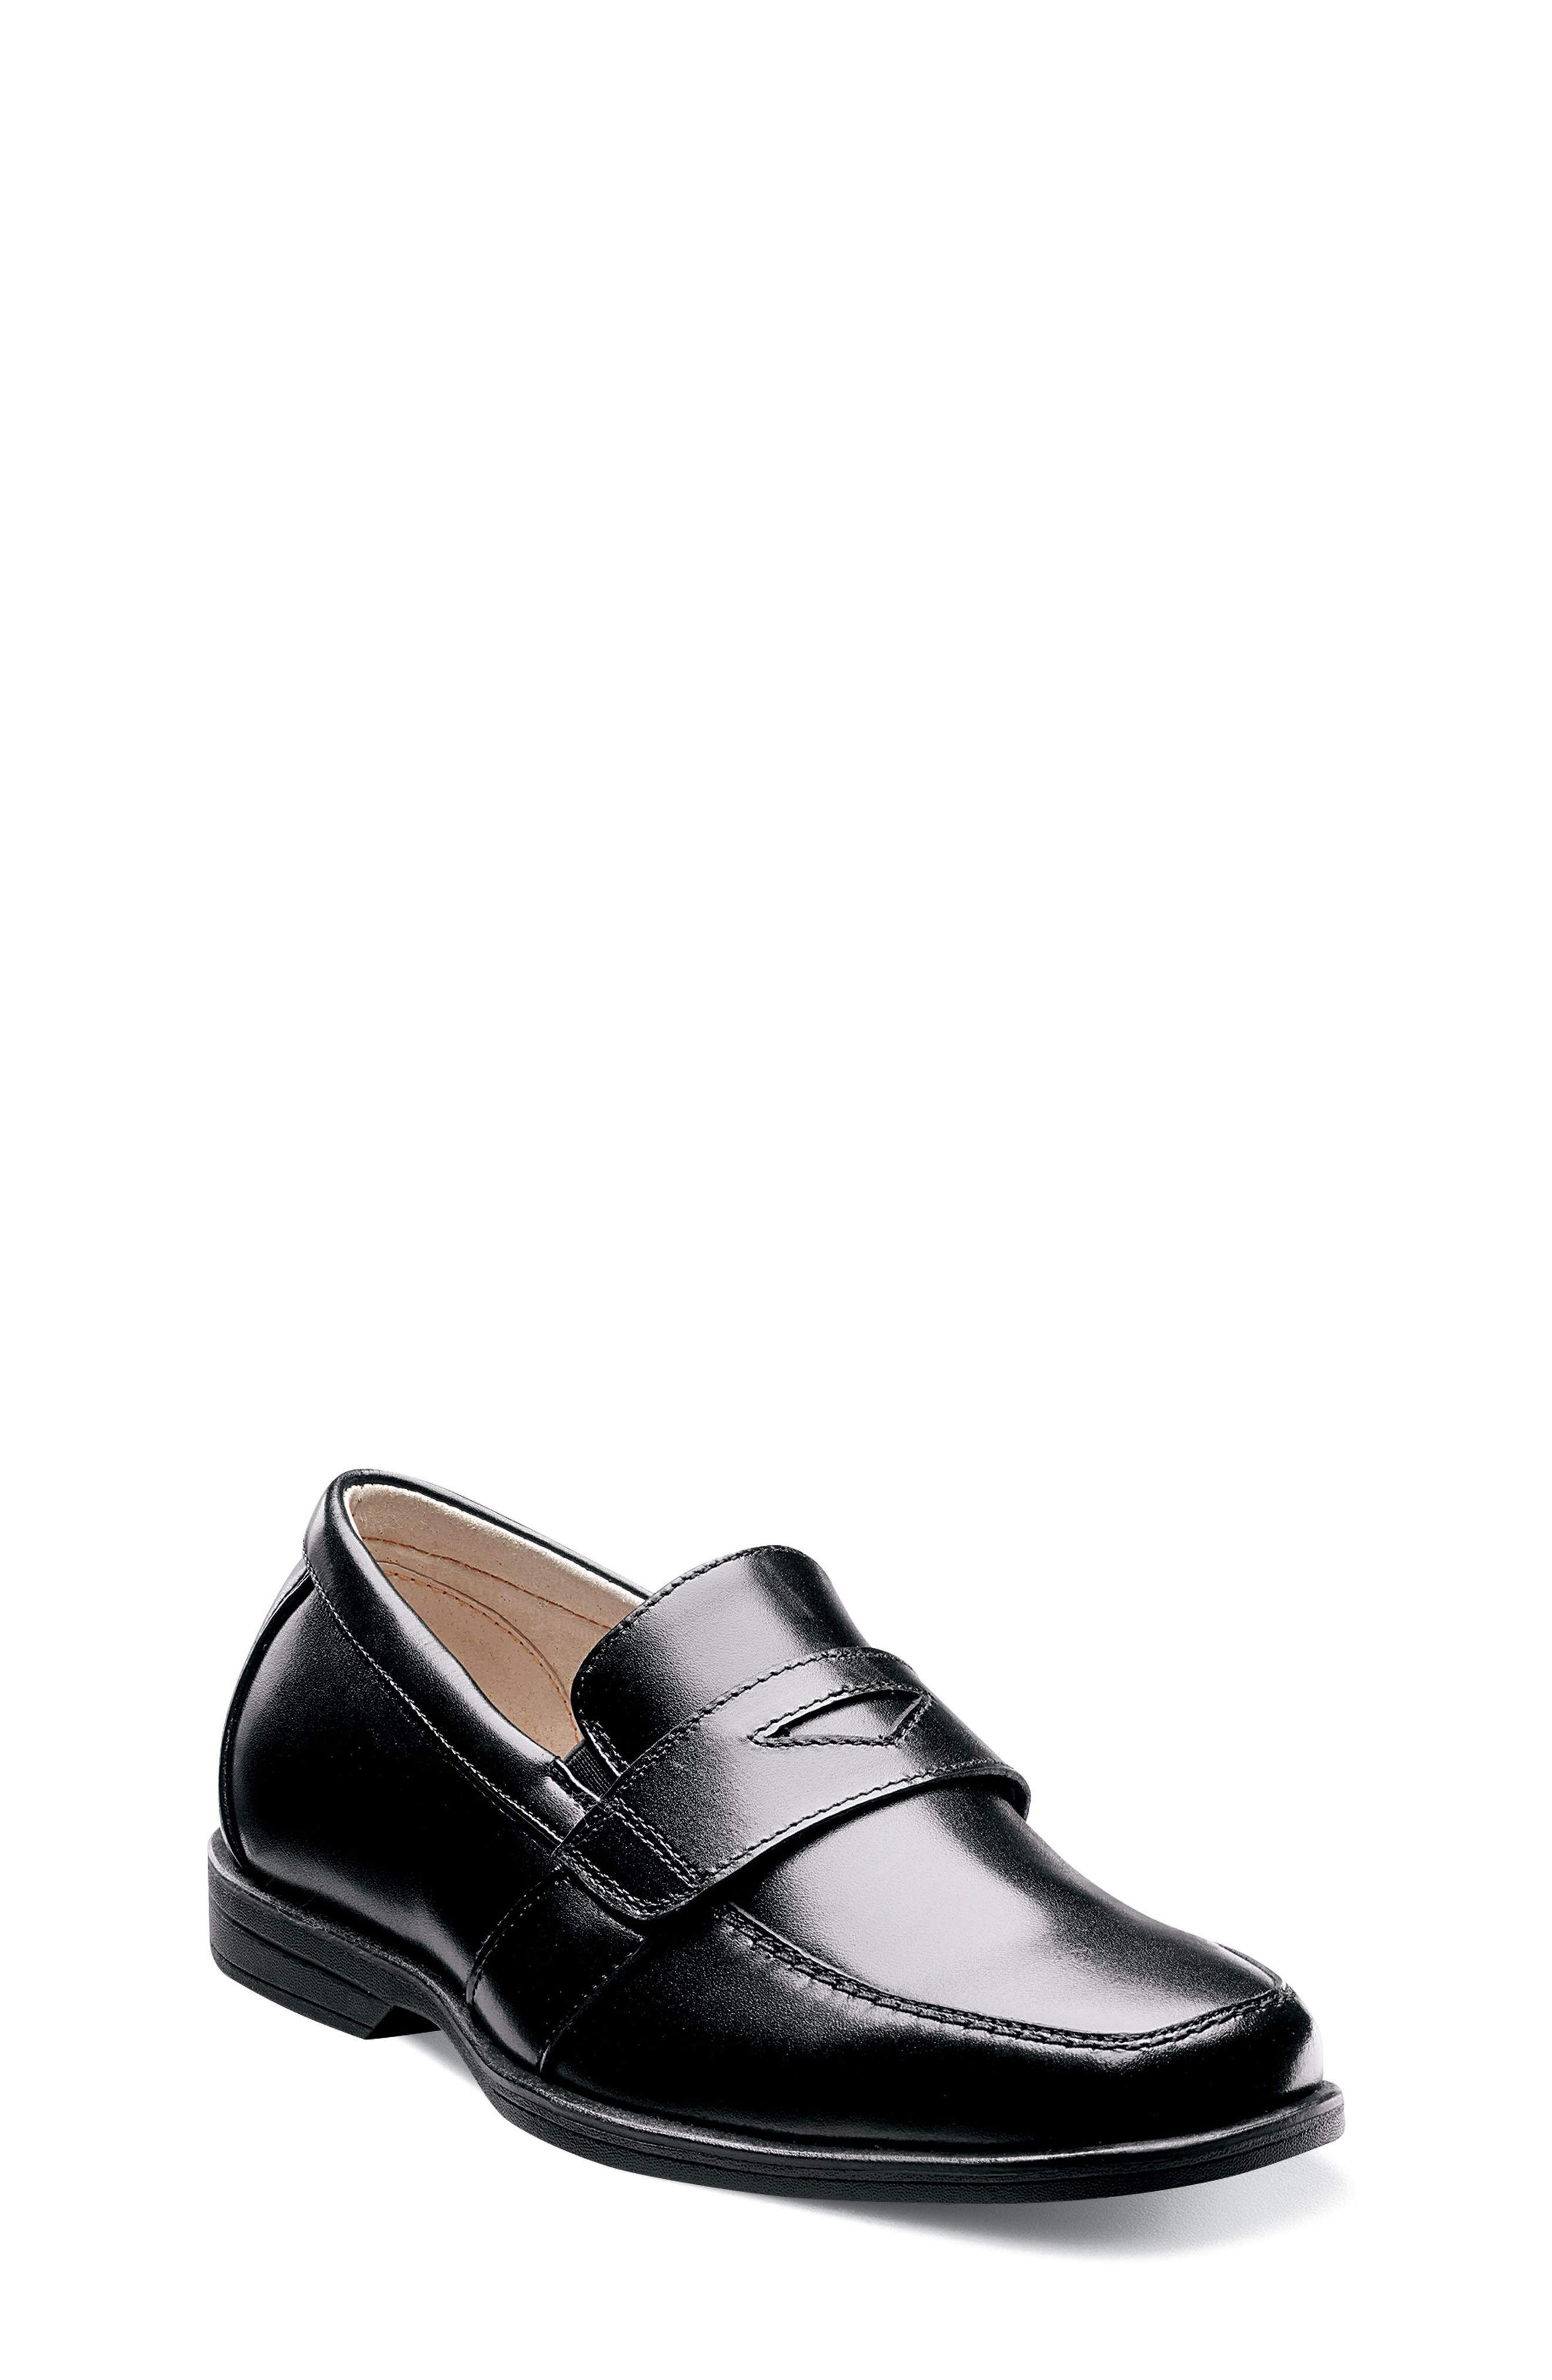 'Reveal' Penny Loafer,                             Main thumbnail 1, color,                             BLACK